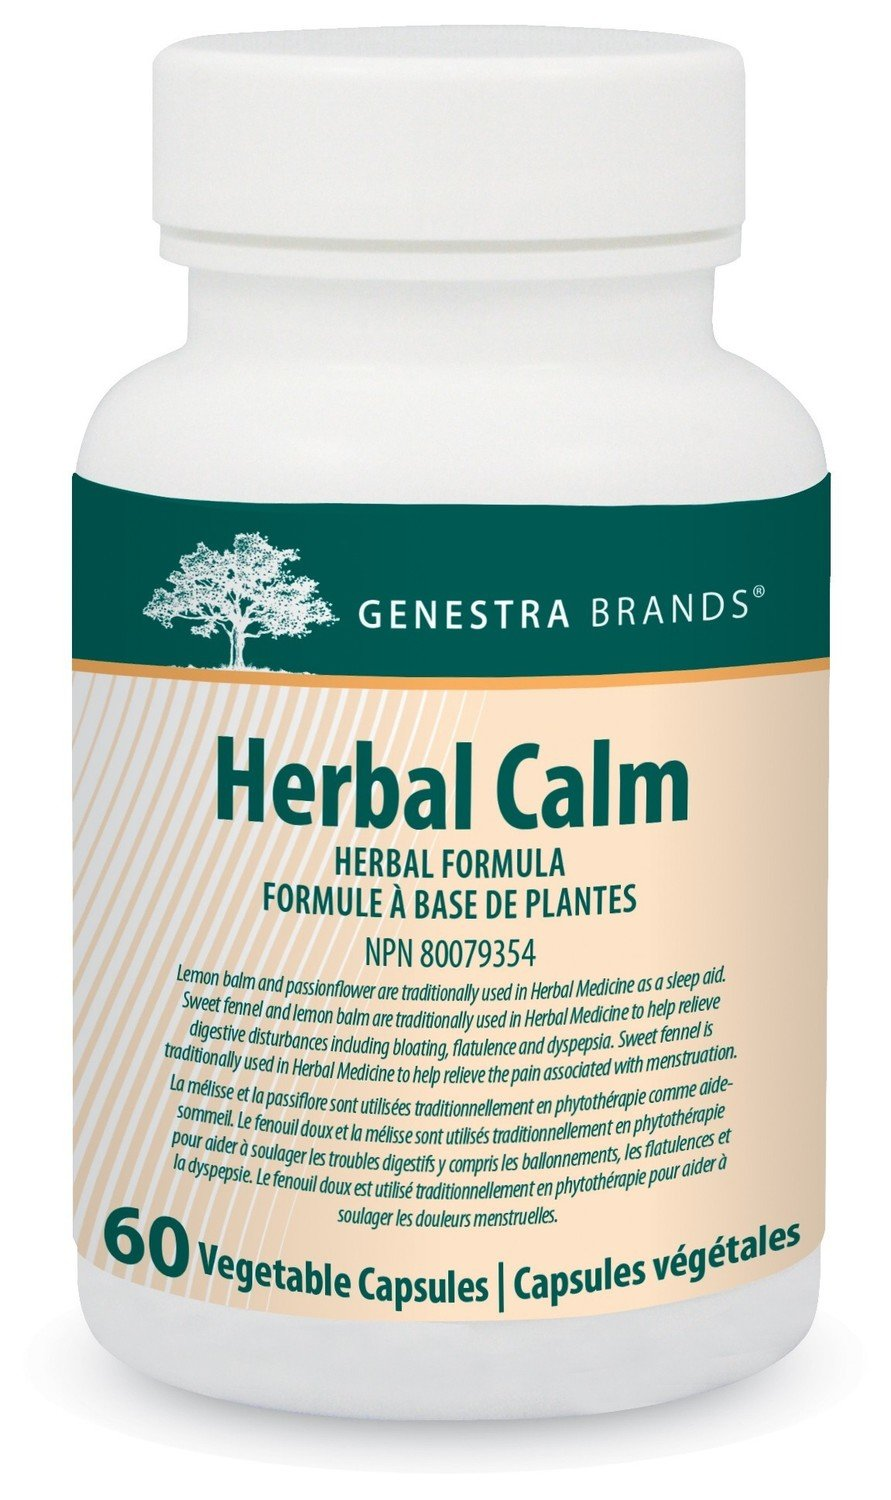 Herbal Calm by Genestra